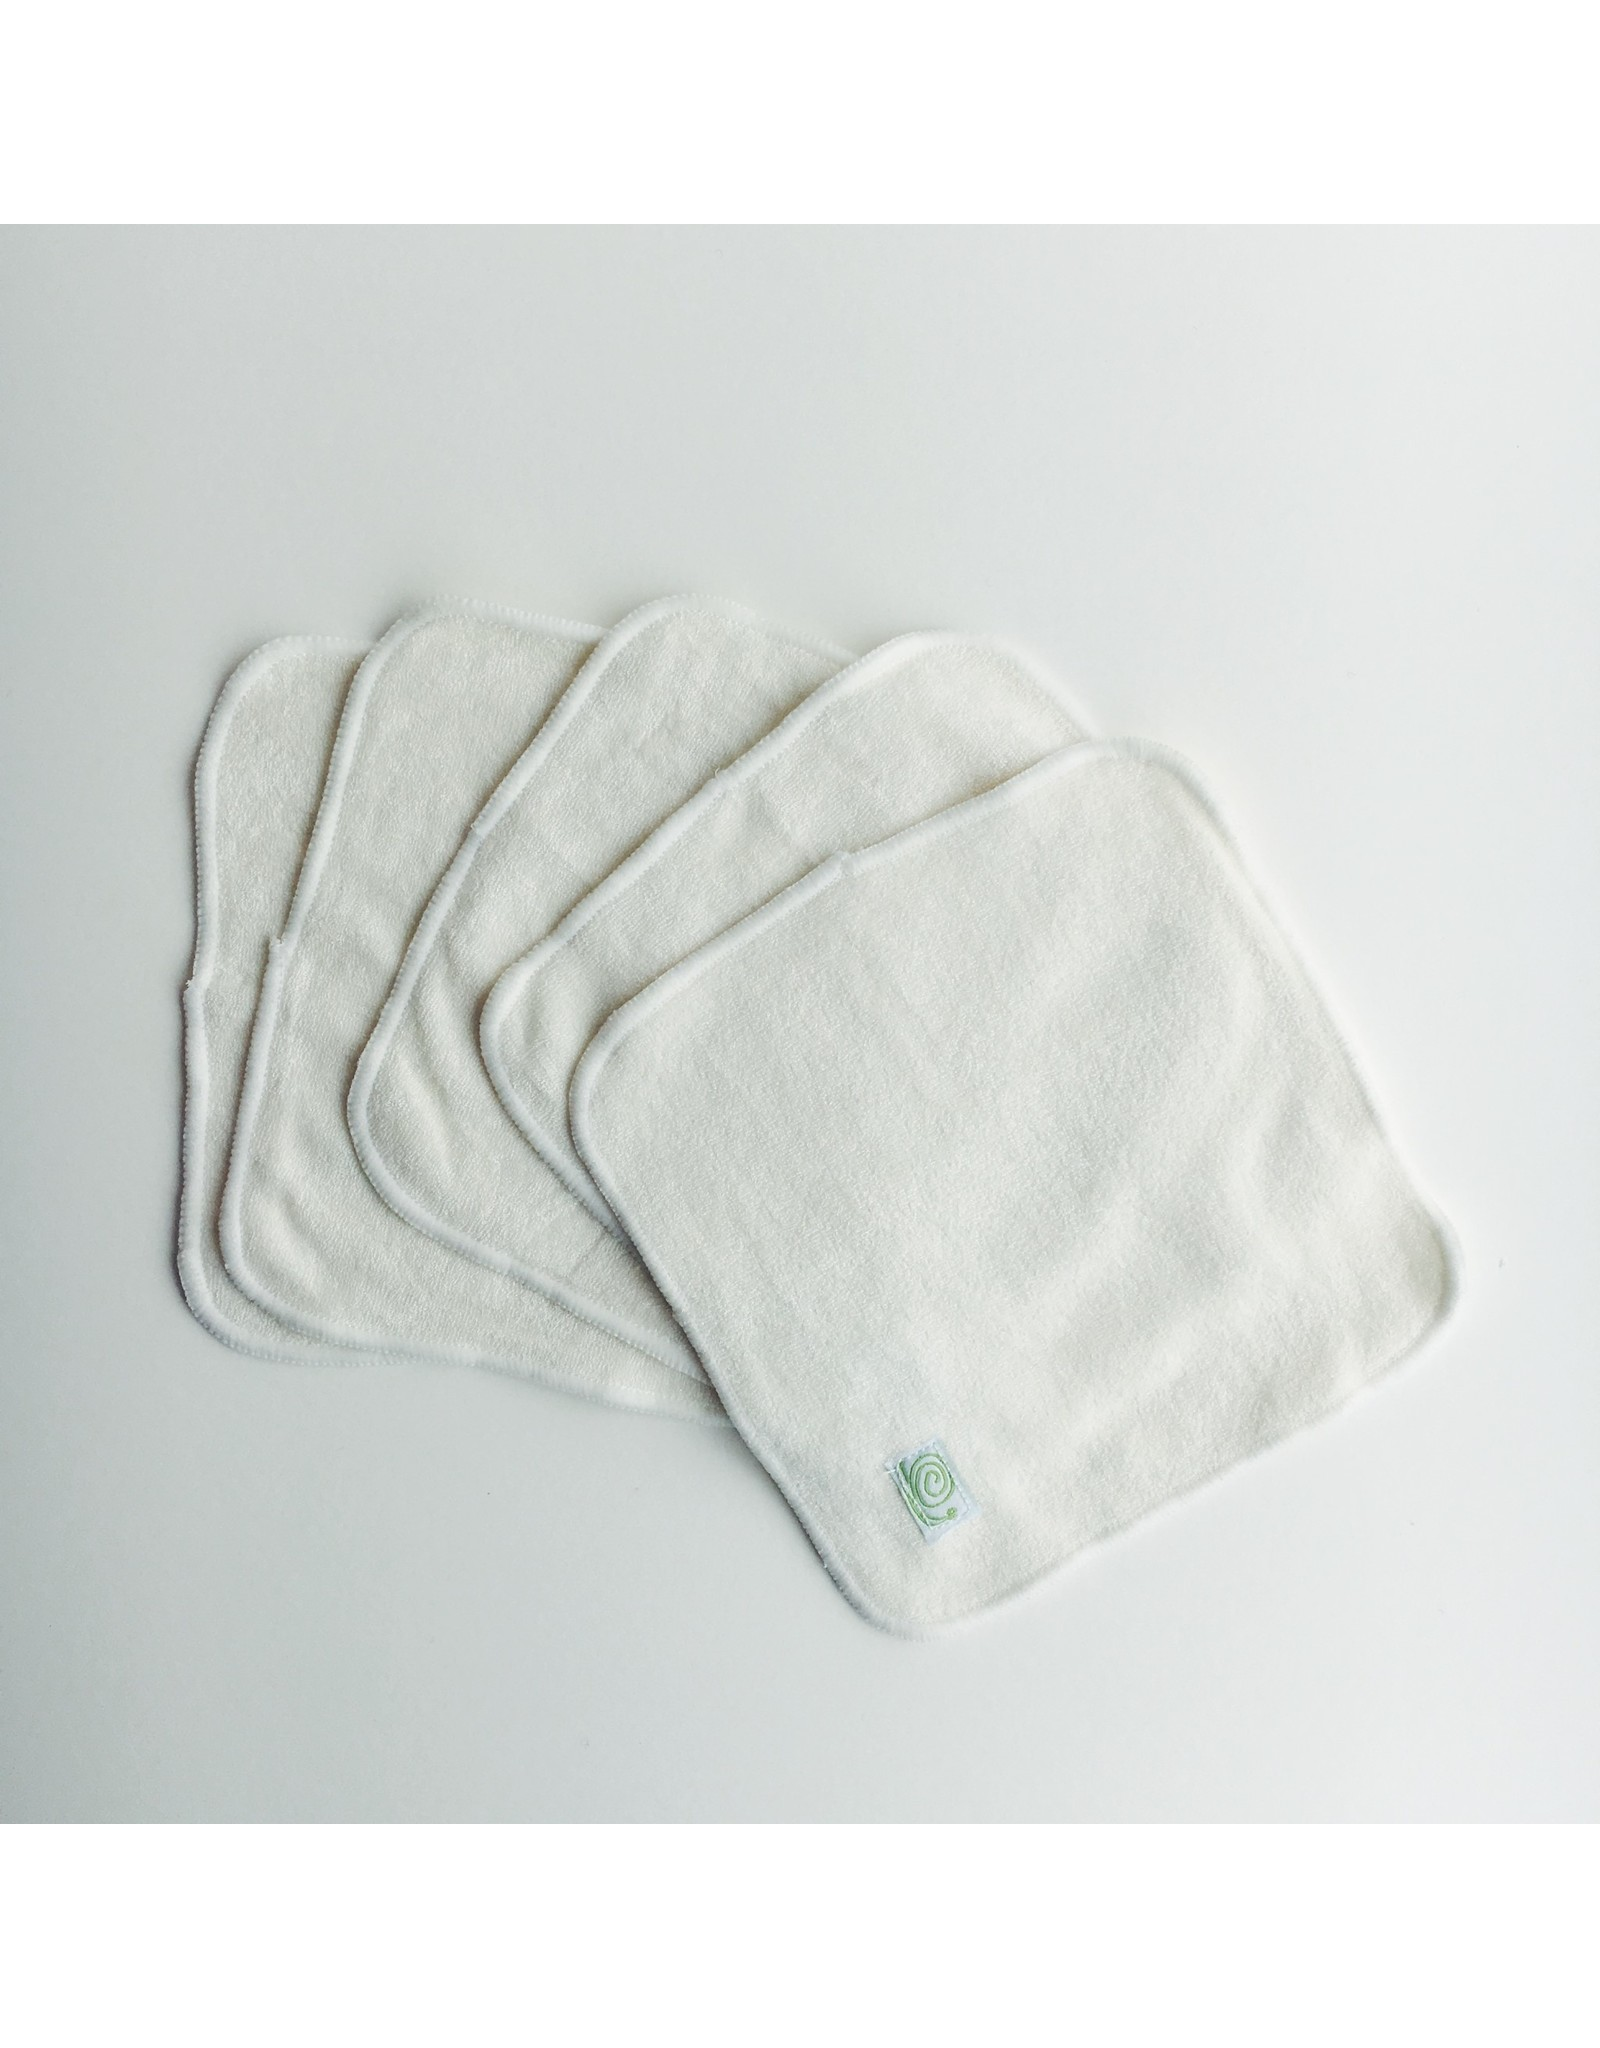 Reusable Wipes Pack of 5